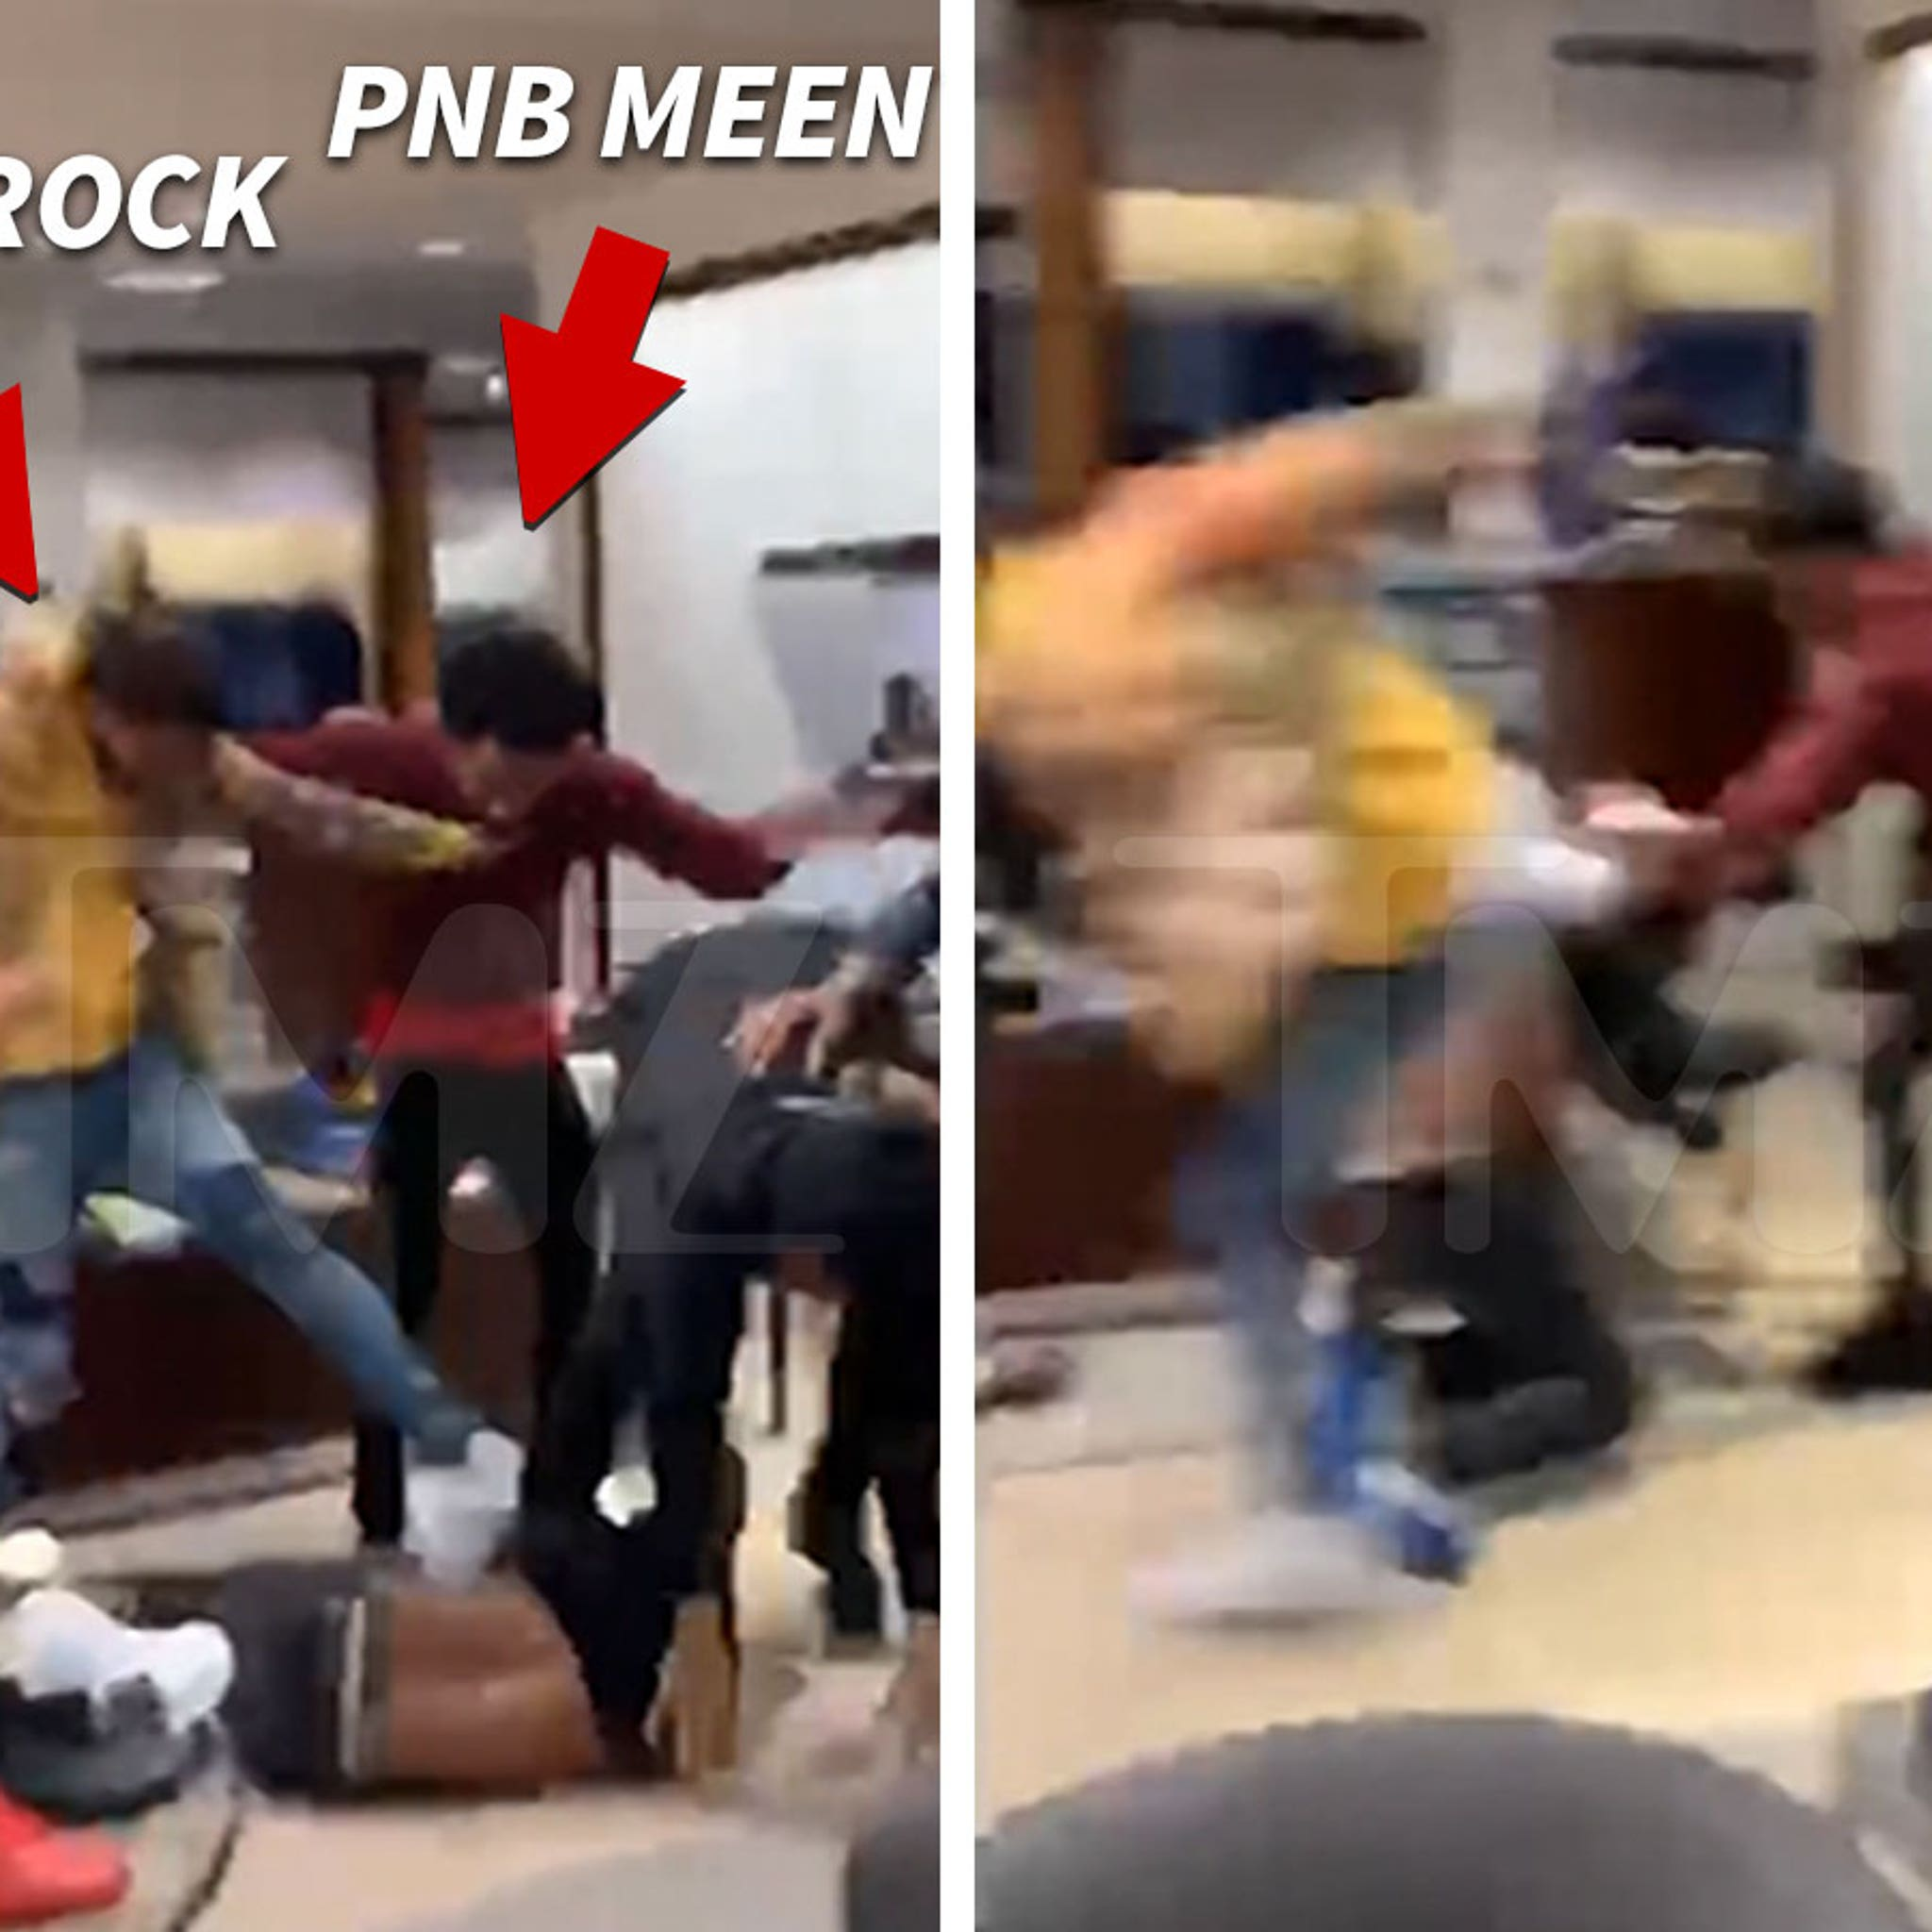 PnB Rock & Crew Allegedly Brawl Inside Neiman Marcus Store in PA